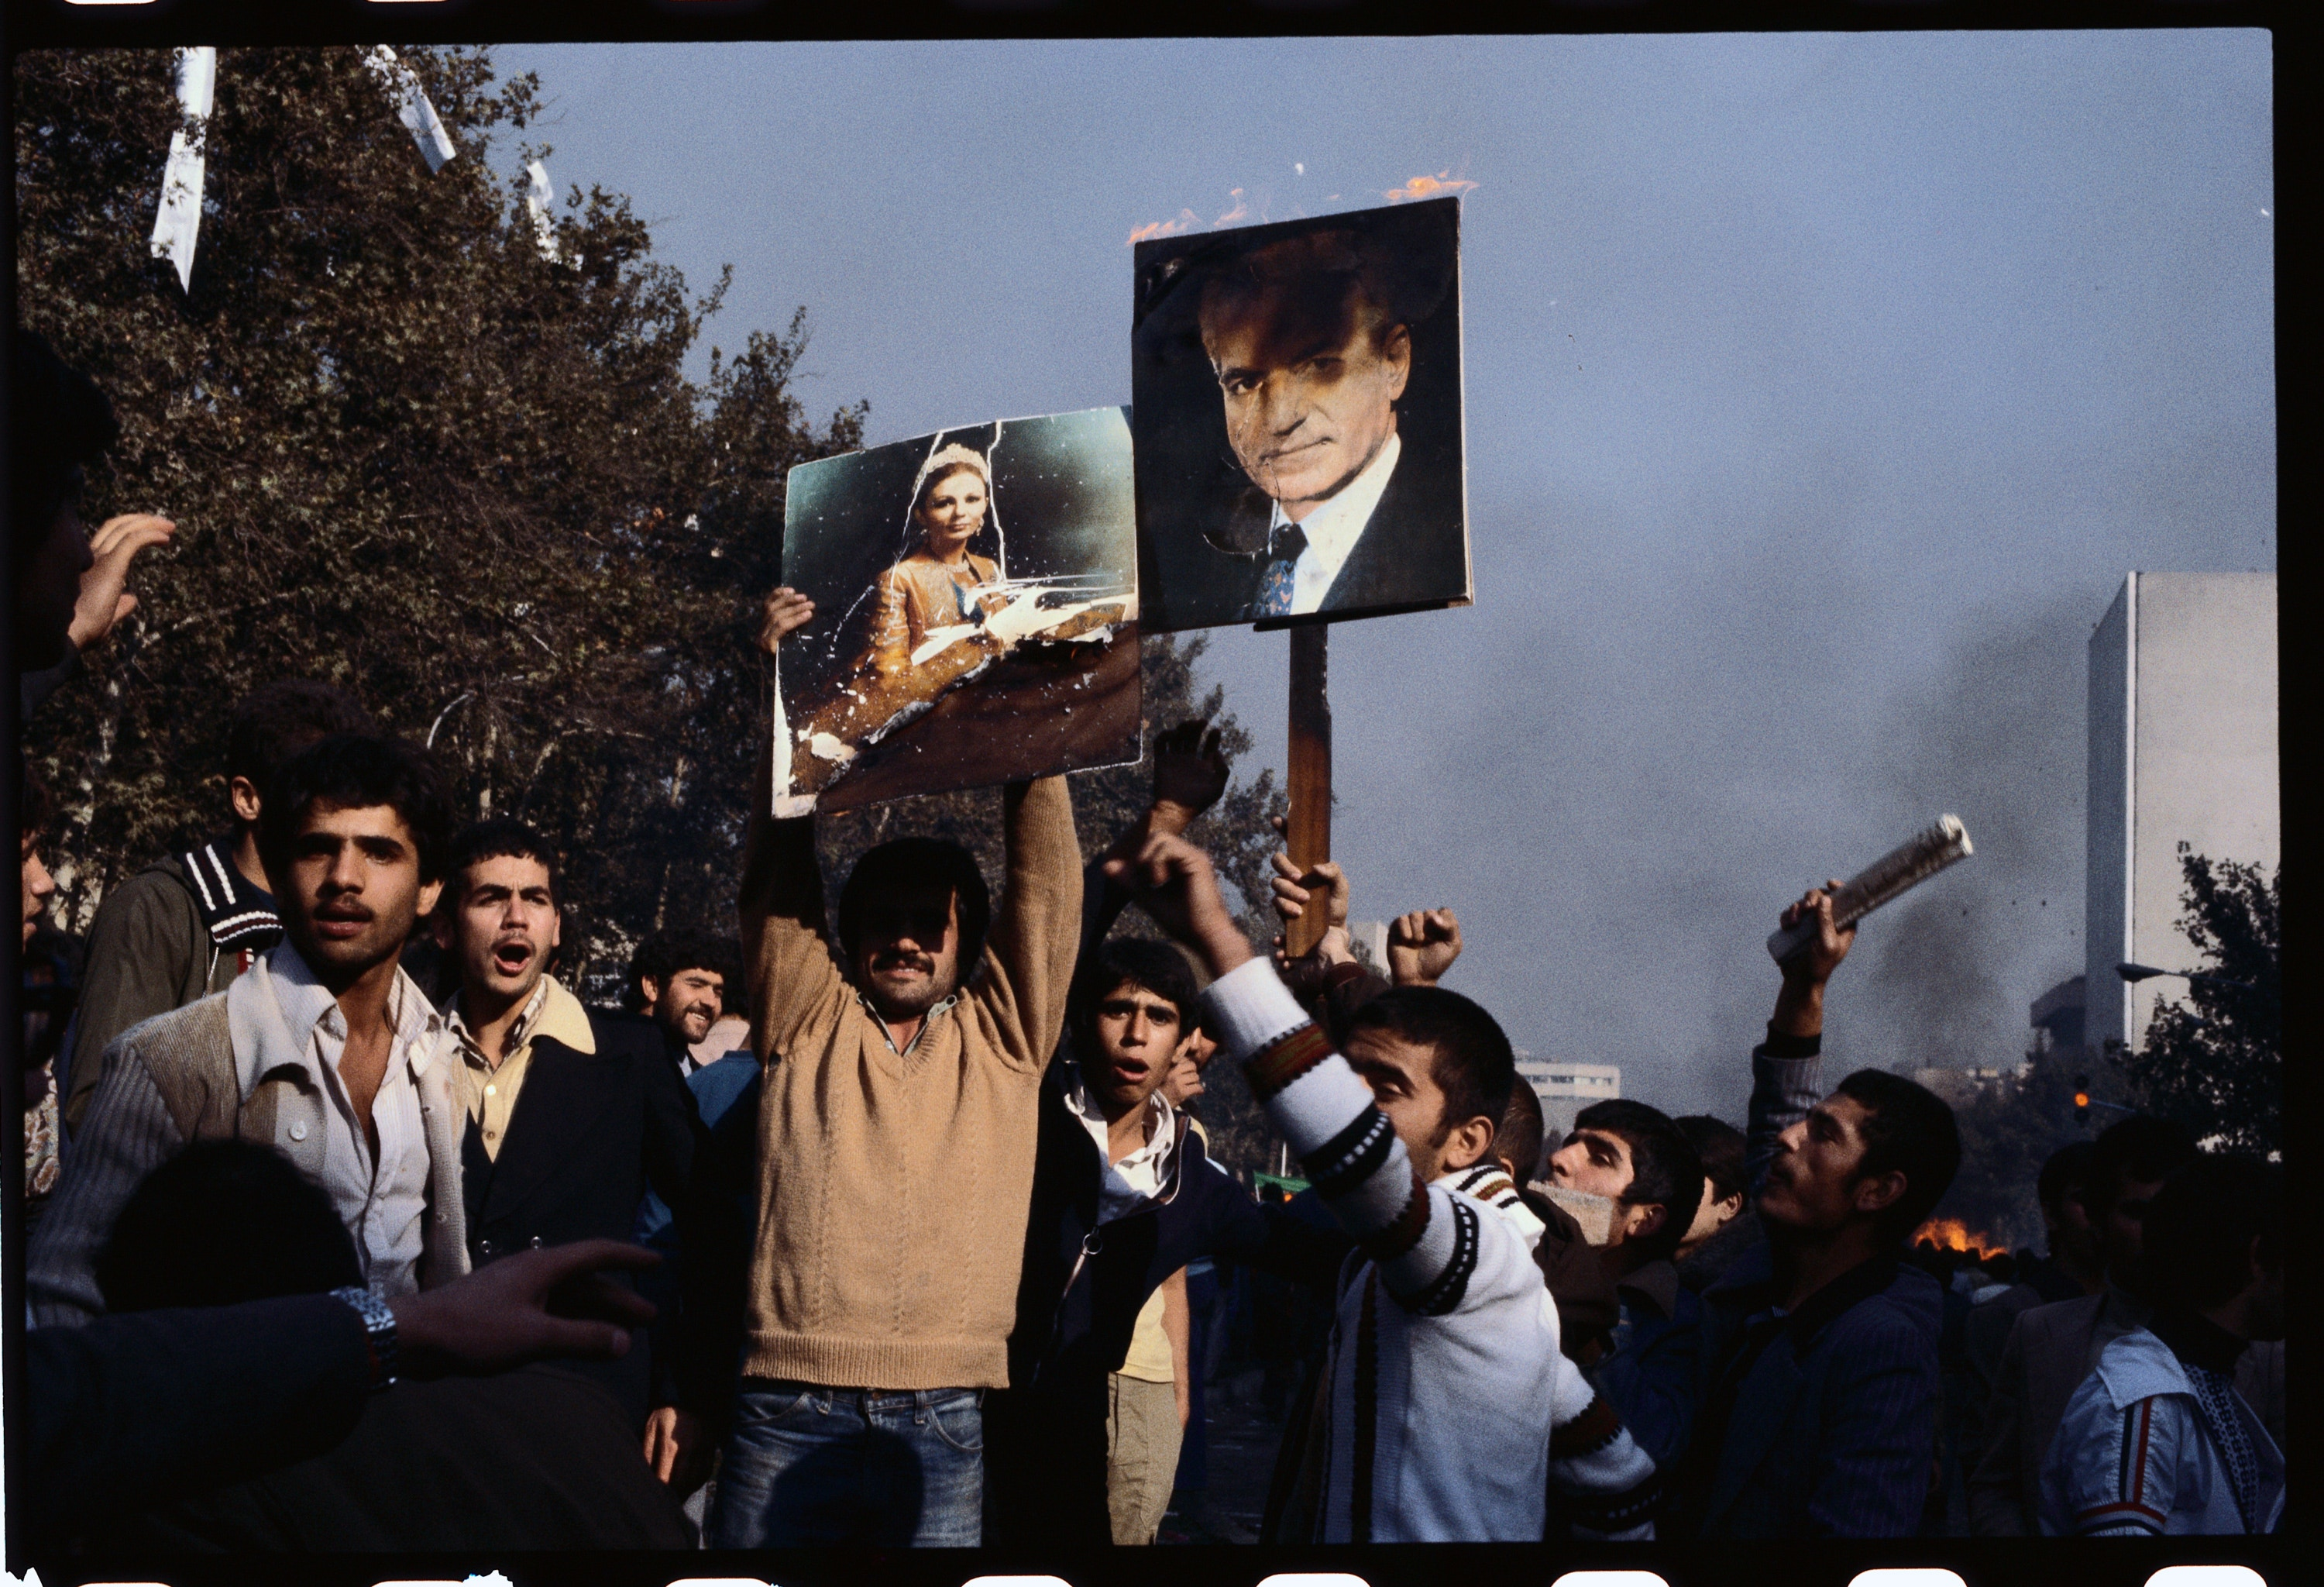 Young men protest against the government of the current Shah, Mohammed Reza Pahlavi. The Shah's government was overthrown in October in favor of an Islamic government led by Ruhollah Khomeini. (Photo by michel Setboun/Corbis via Getty Images)